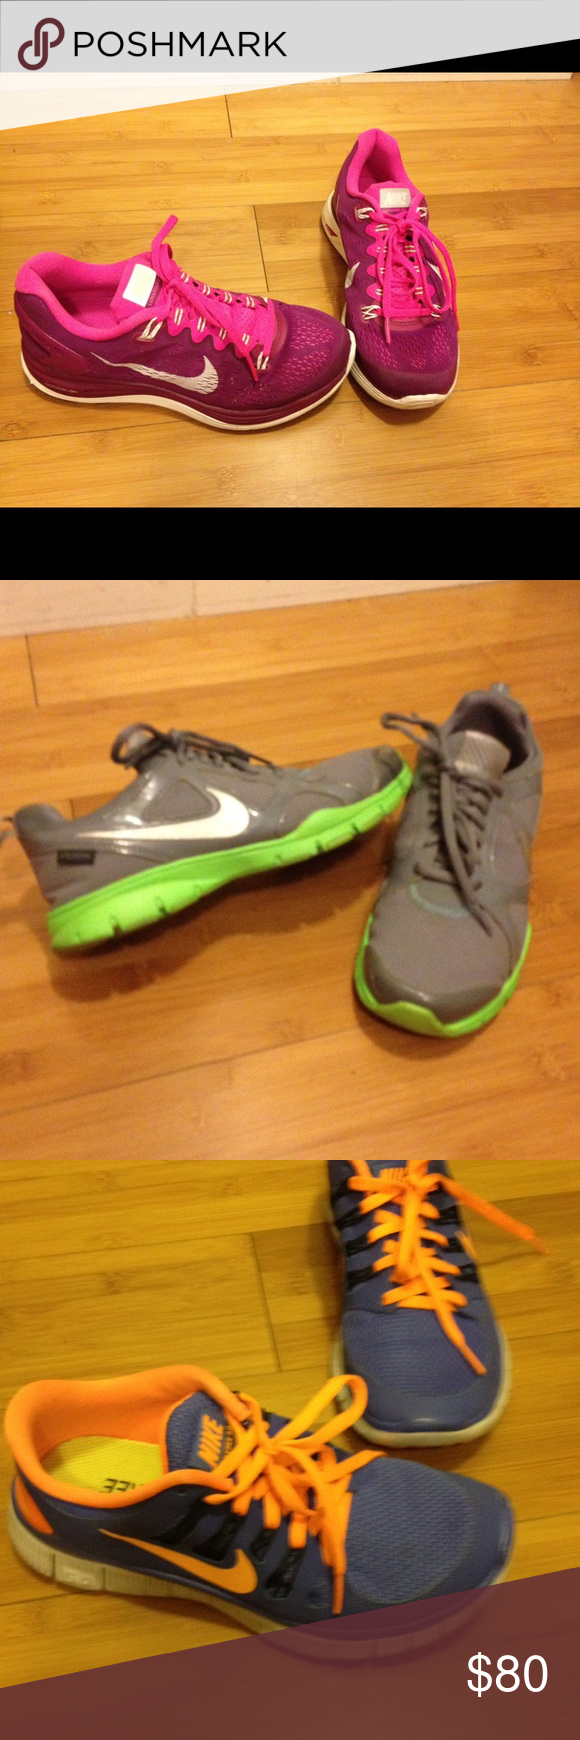 6d4993dd8266 Nike Running Shoes size 6.5